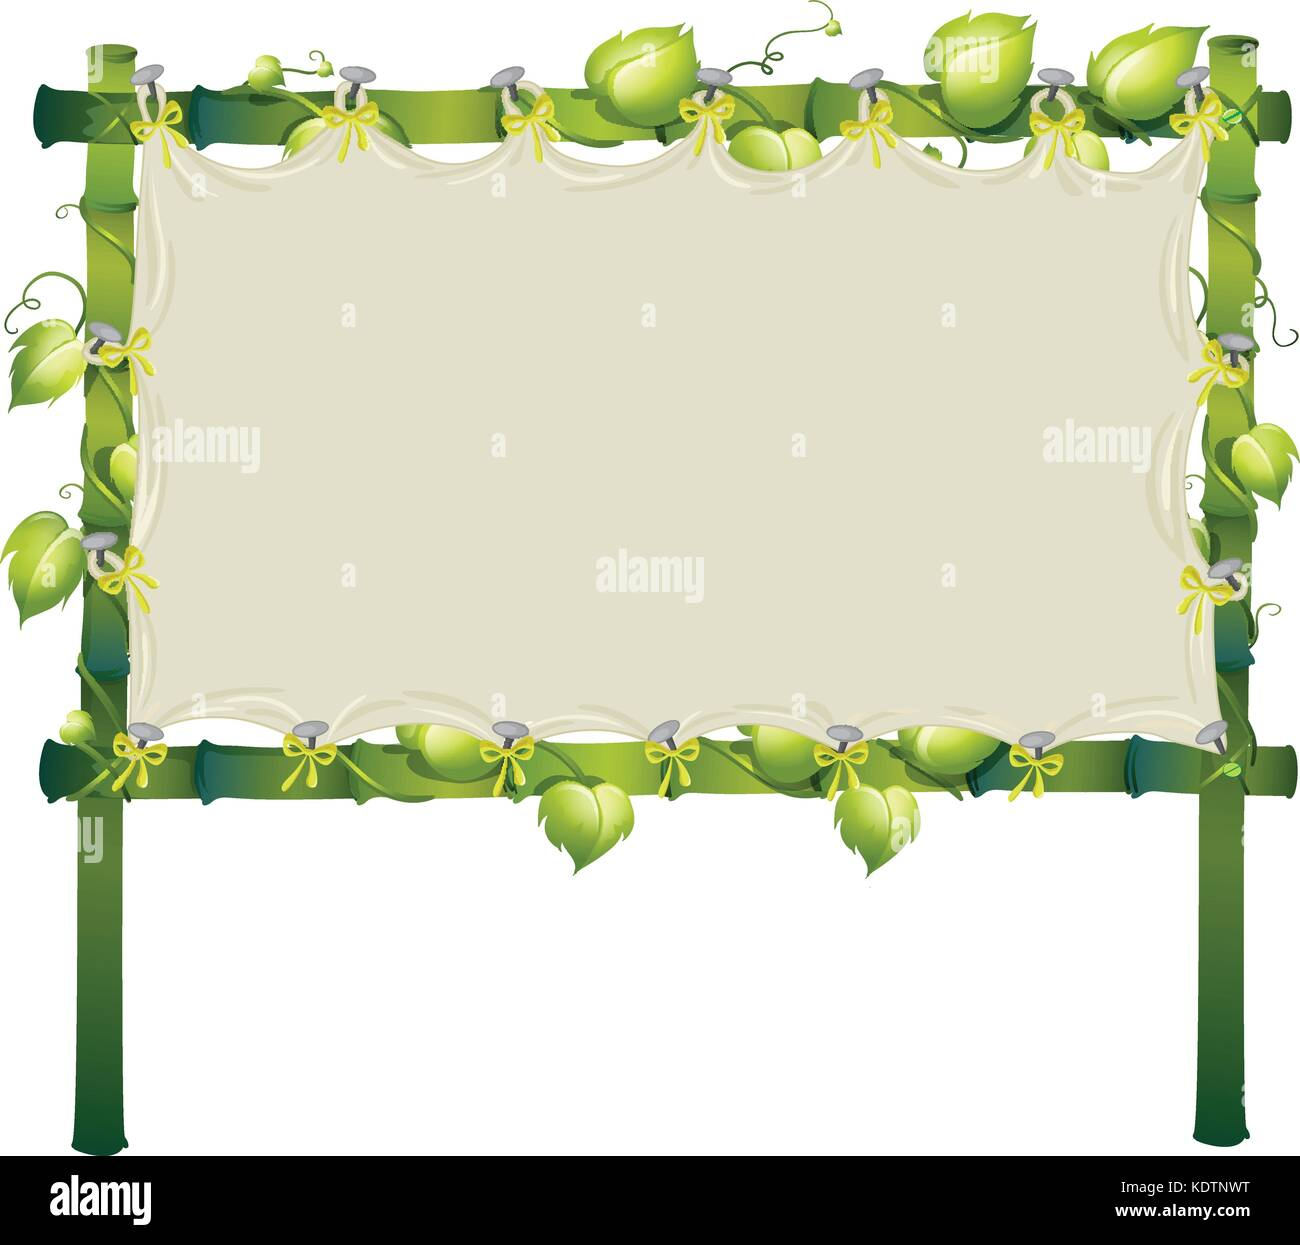 Frame made of bamboo with white cloth illustration Stock Vector Art ...